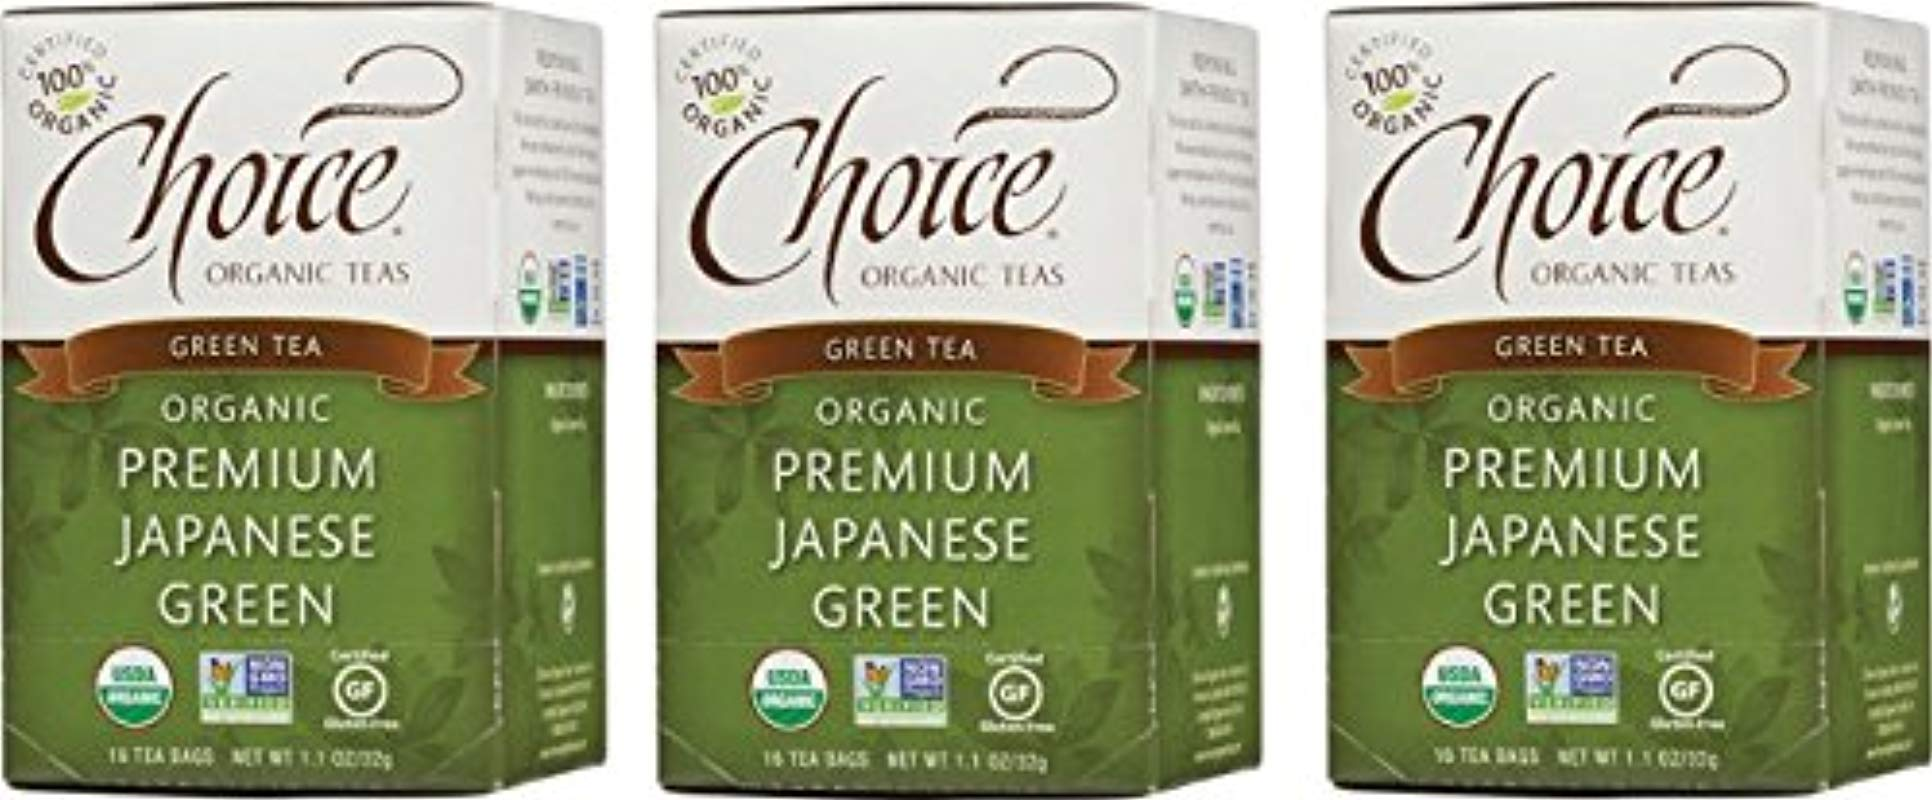 Choice Organic Teas Green Tea 3 Boxes Of 16 48 Tea Bags Premium Japanese Green